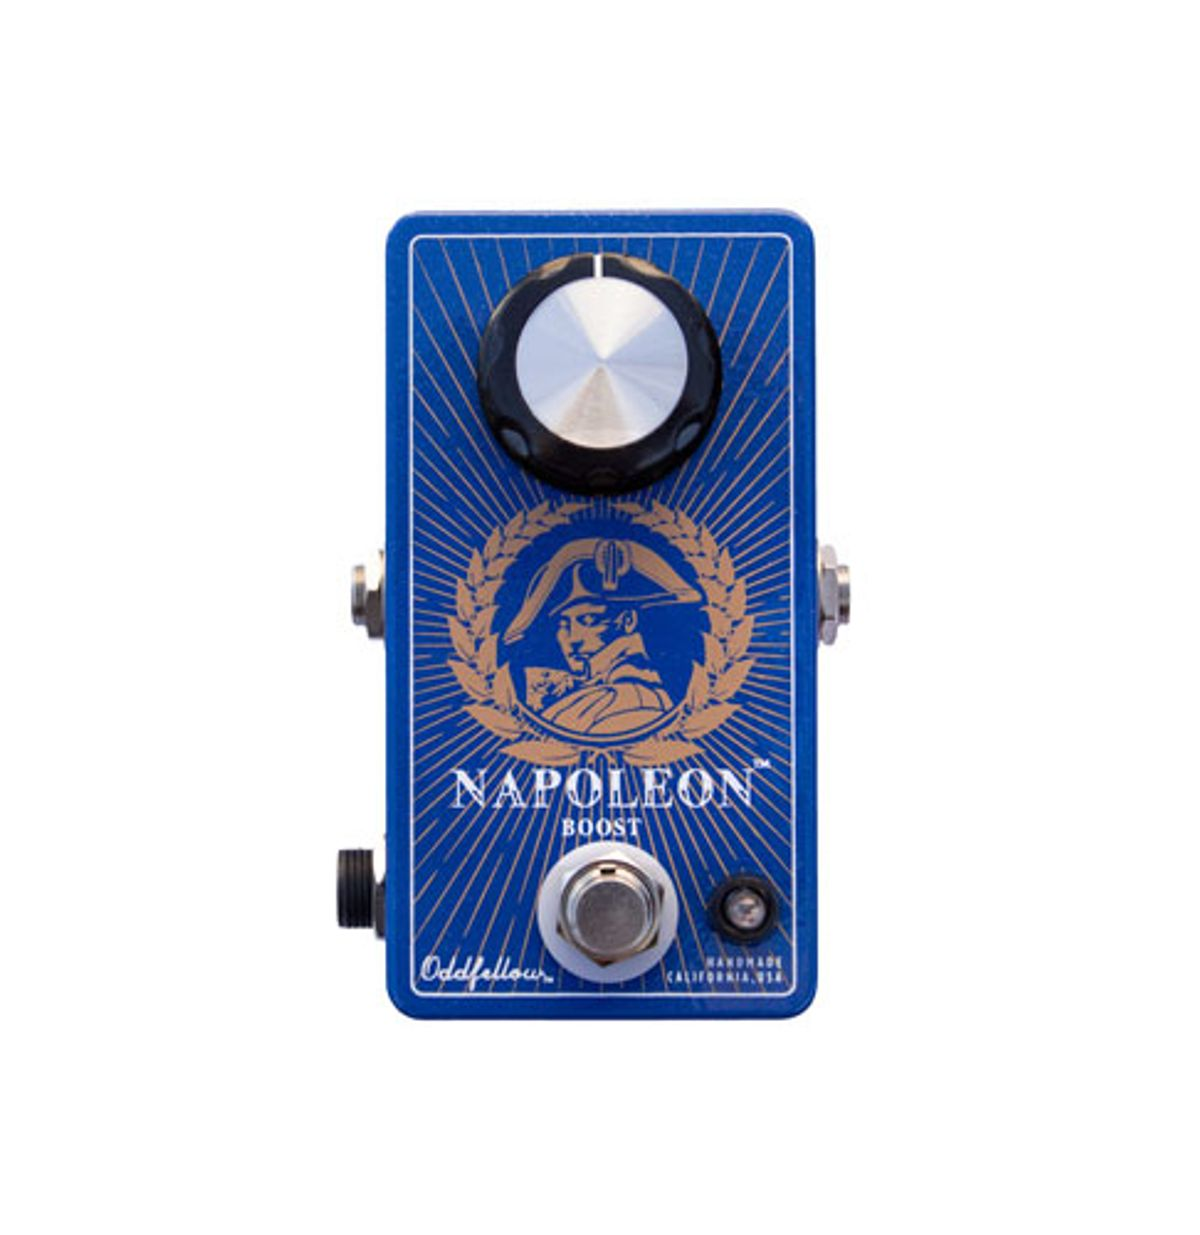 Oddfellow FX Introduces the Napoleon Boost